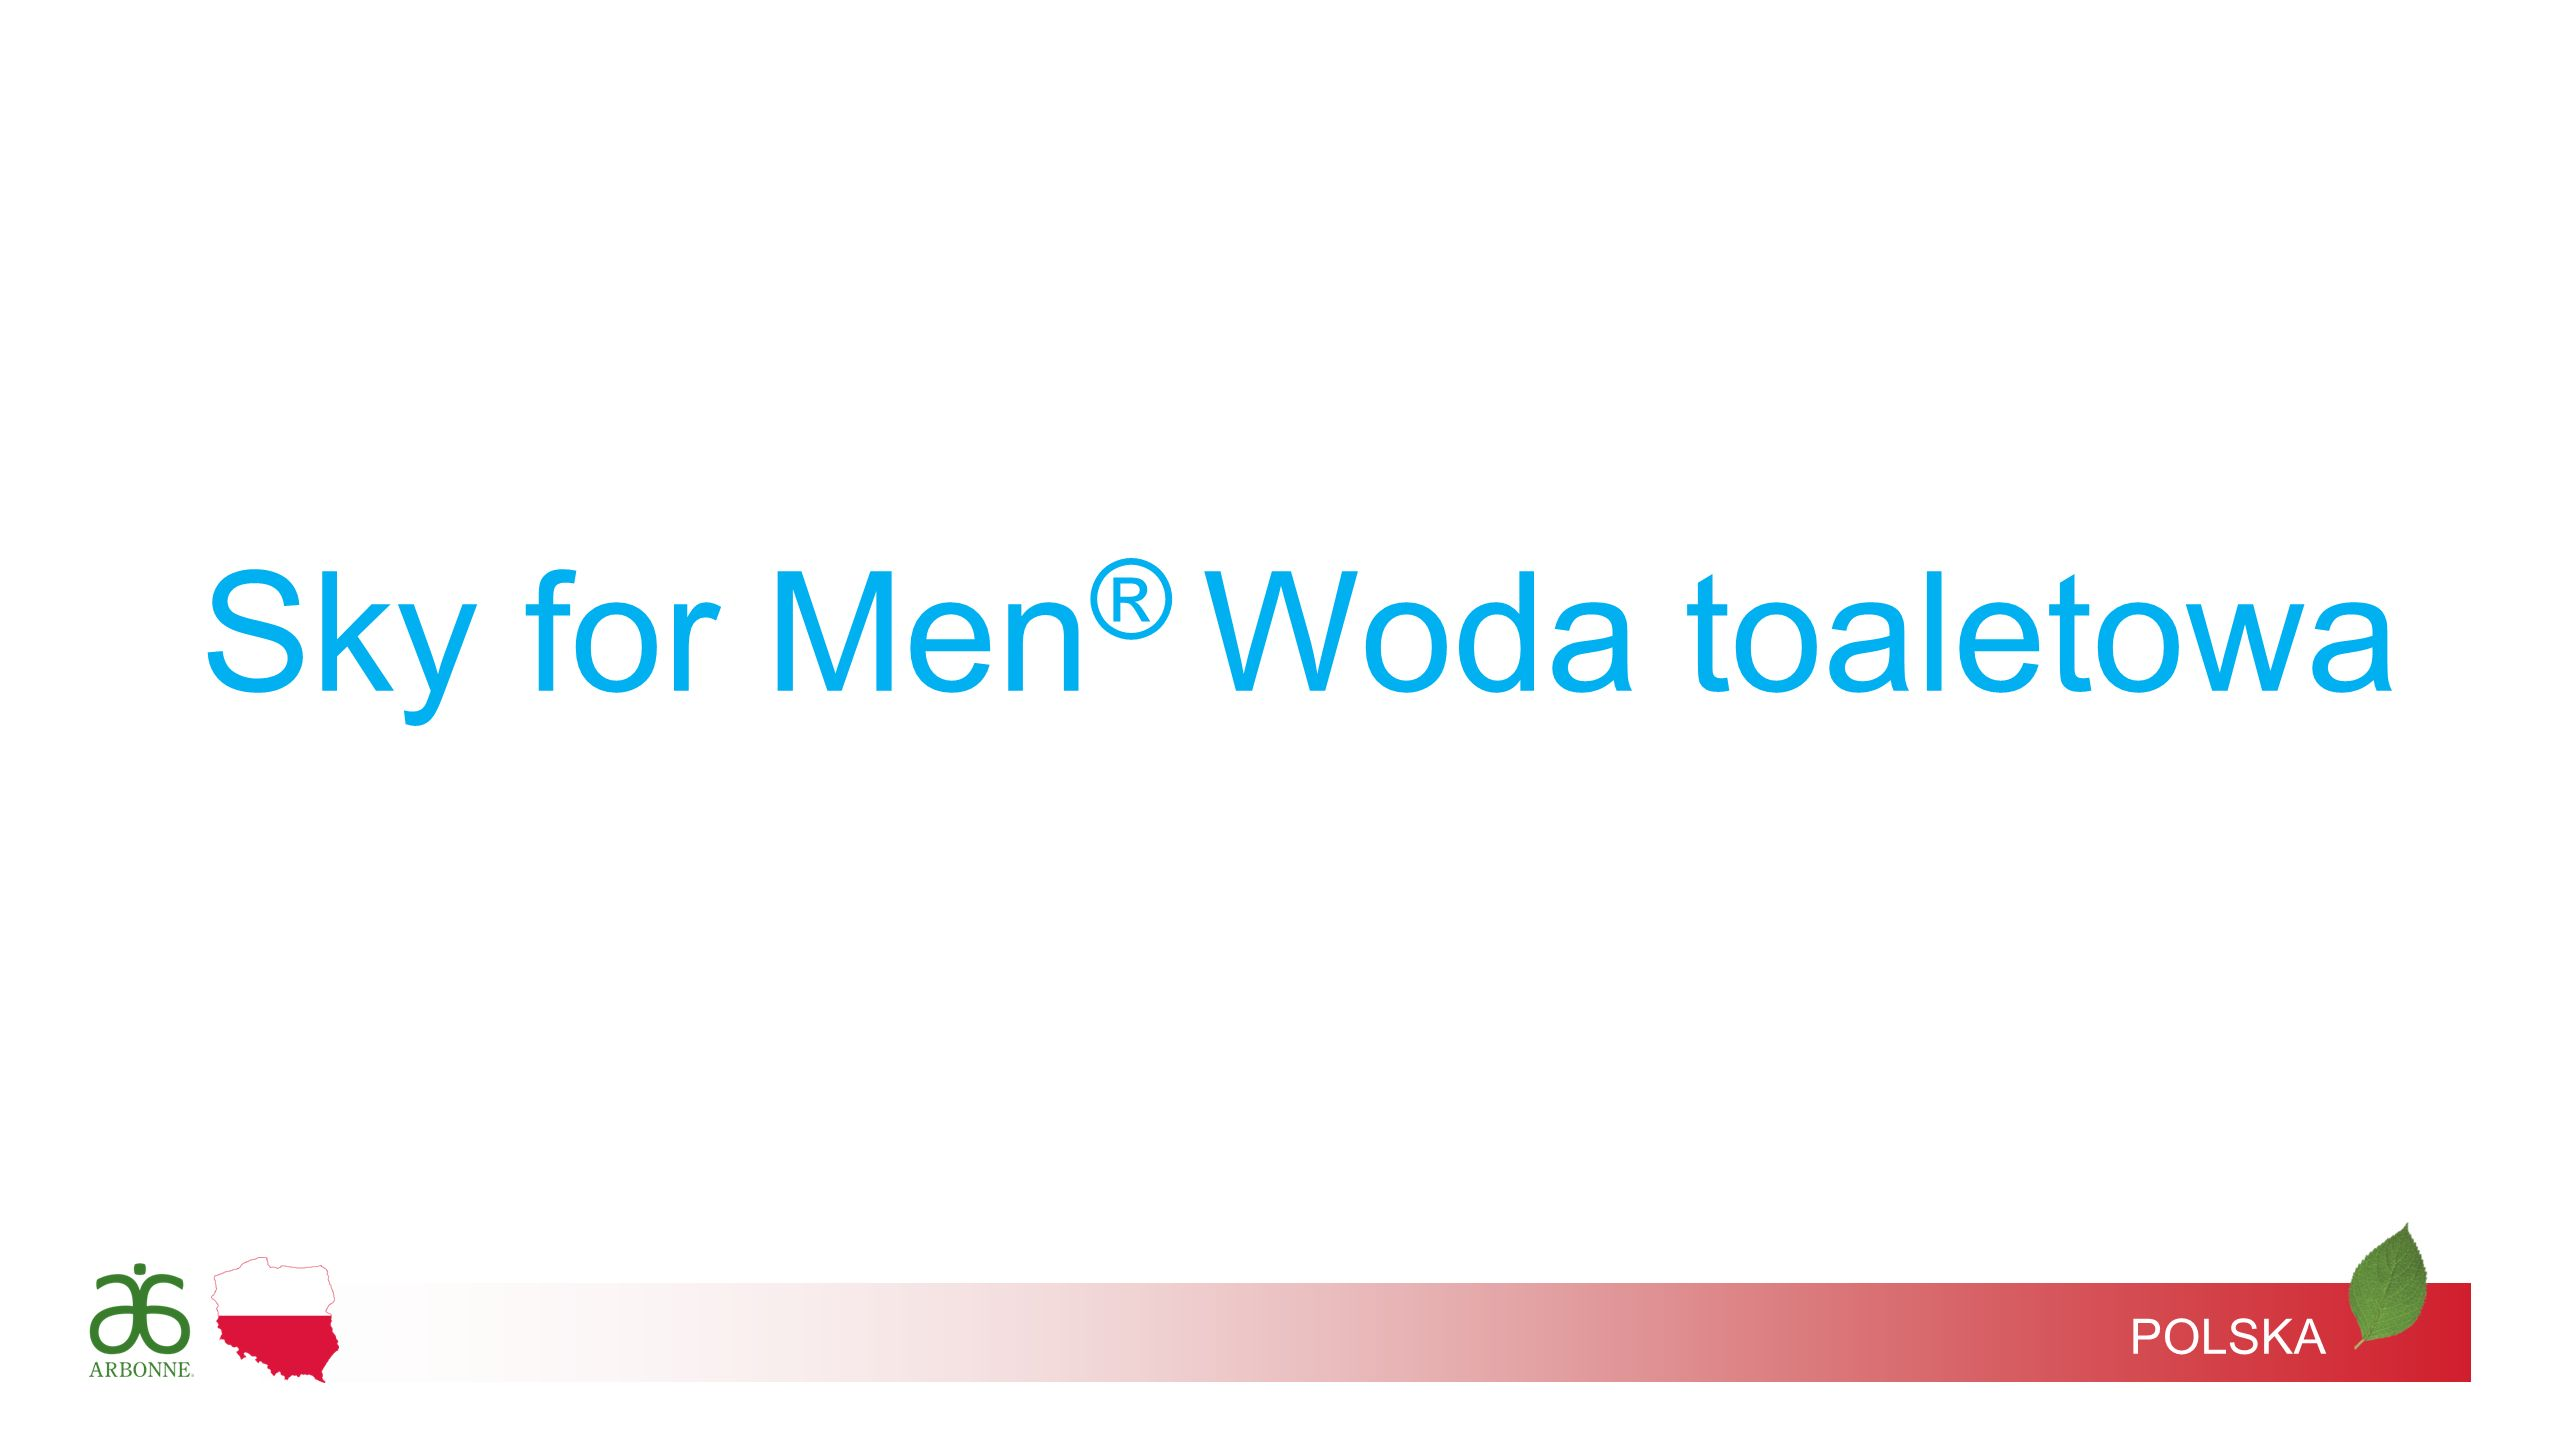 Sky for Men® Woda toaletowa